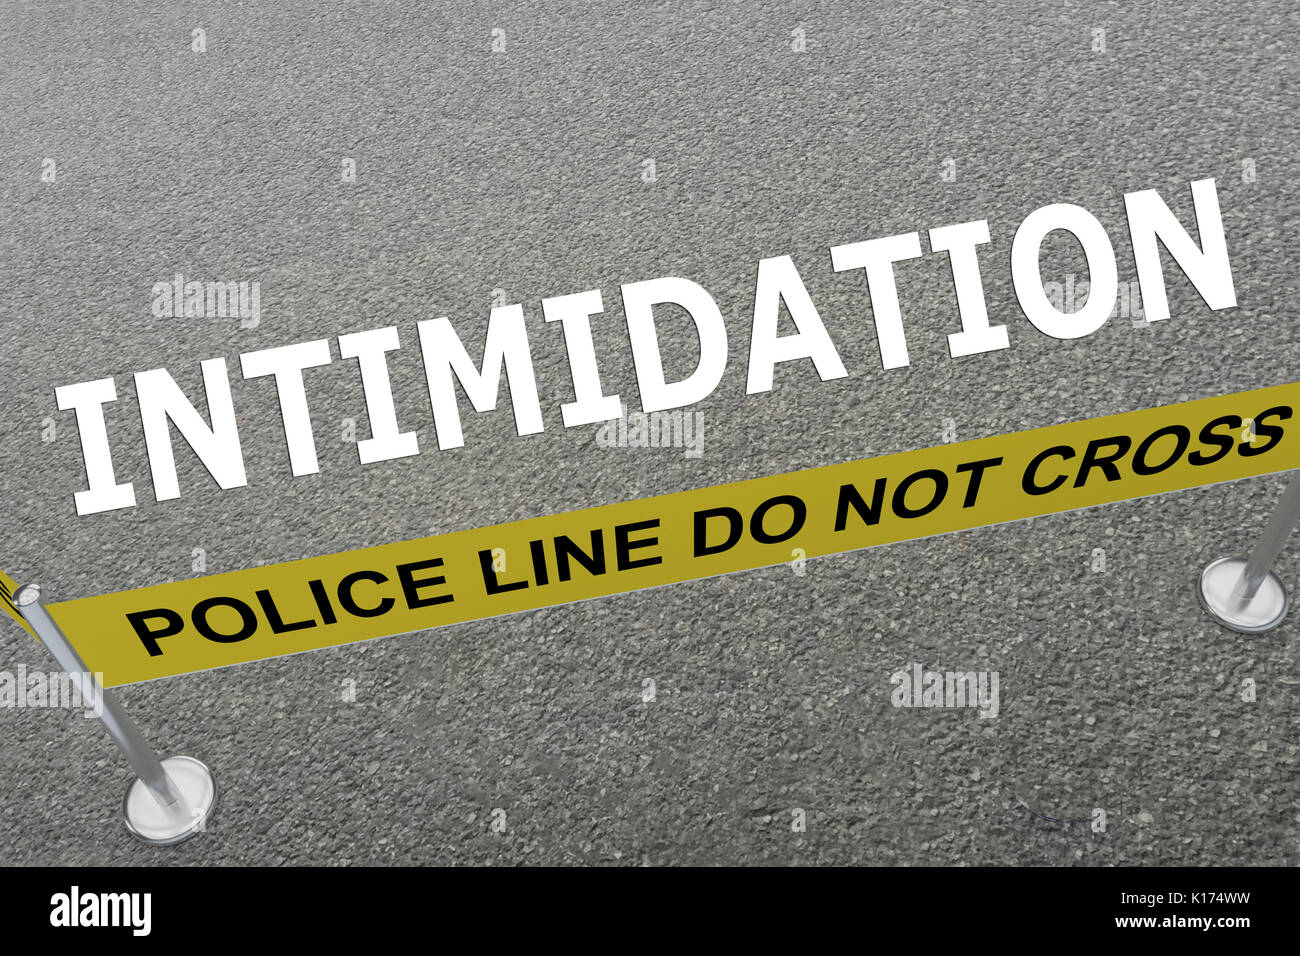 3D illustration of 'INTIMIDATION' title on the ground in a police arena - Stock Image